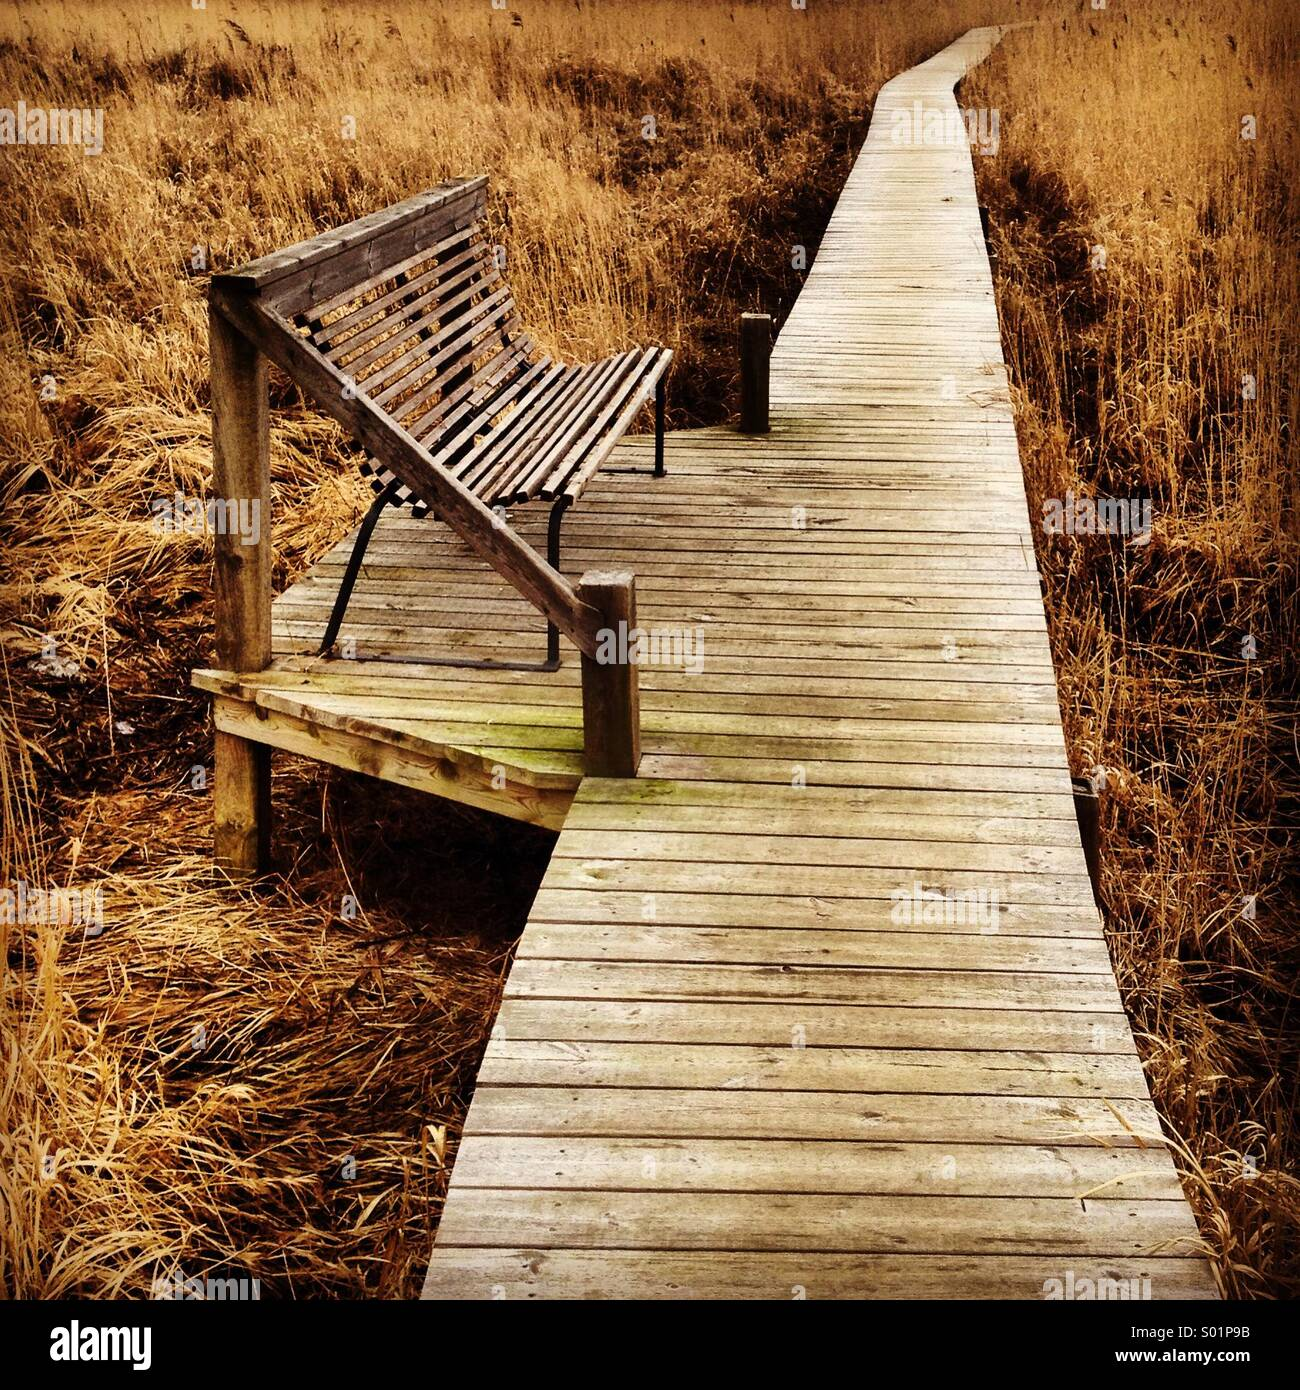 A single empty bench on a walkway over seaside reeds in Scandinavia - Stock Image